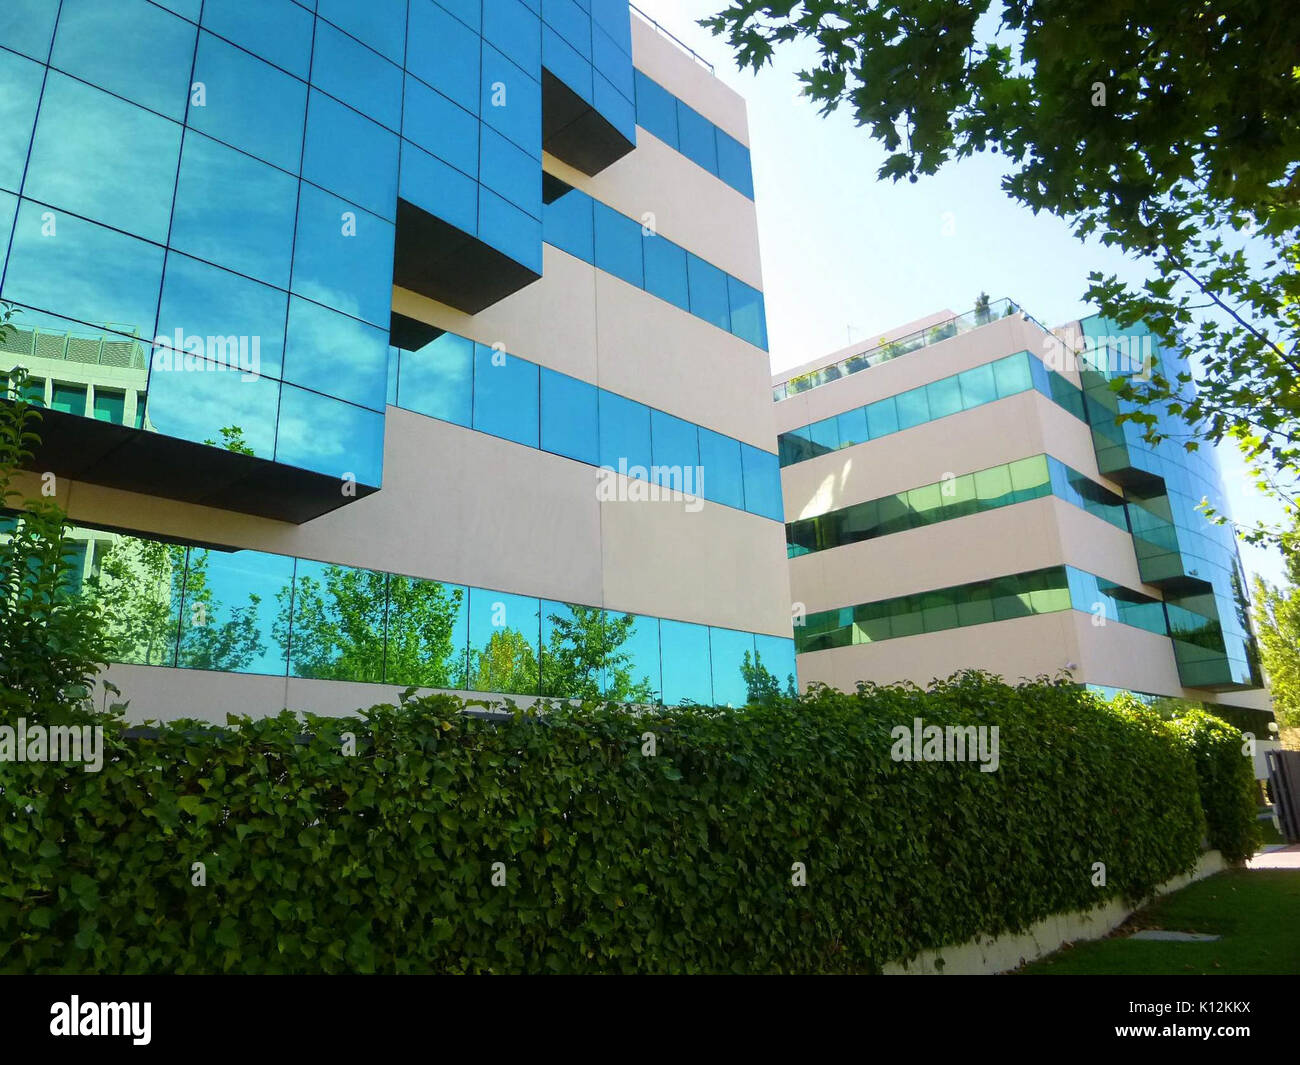 Moraleja stock photos moraleja stock images alamy for Galp energia oficina virtual